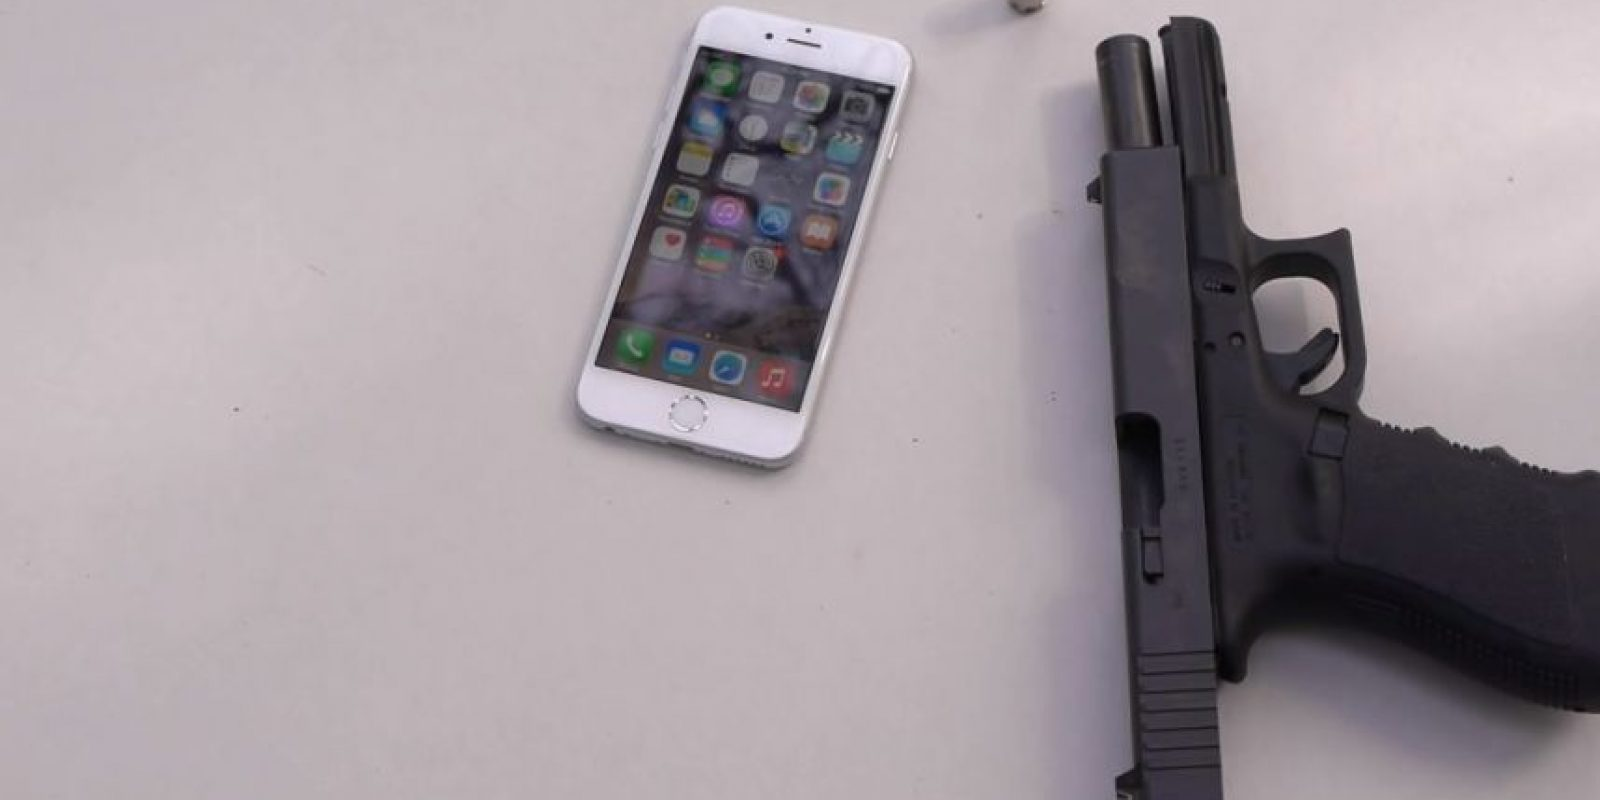 iPhone 6 contra una pistola. Foto: TechRax